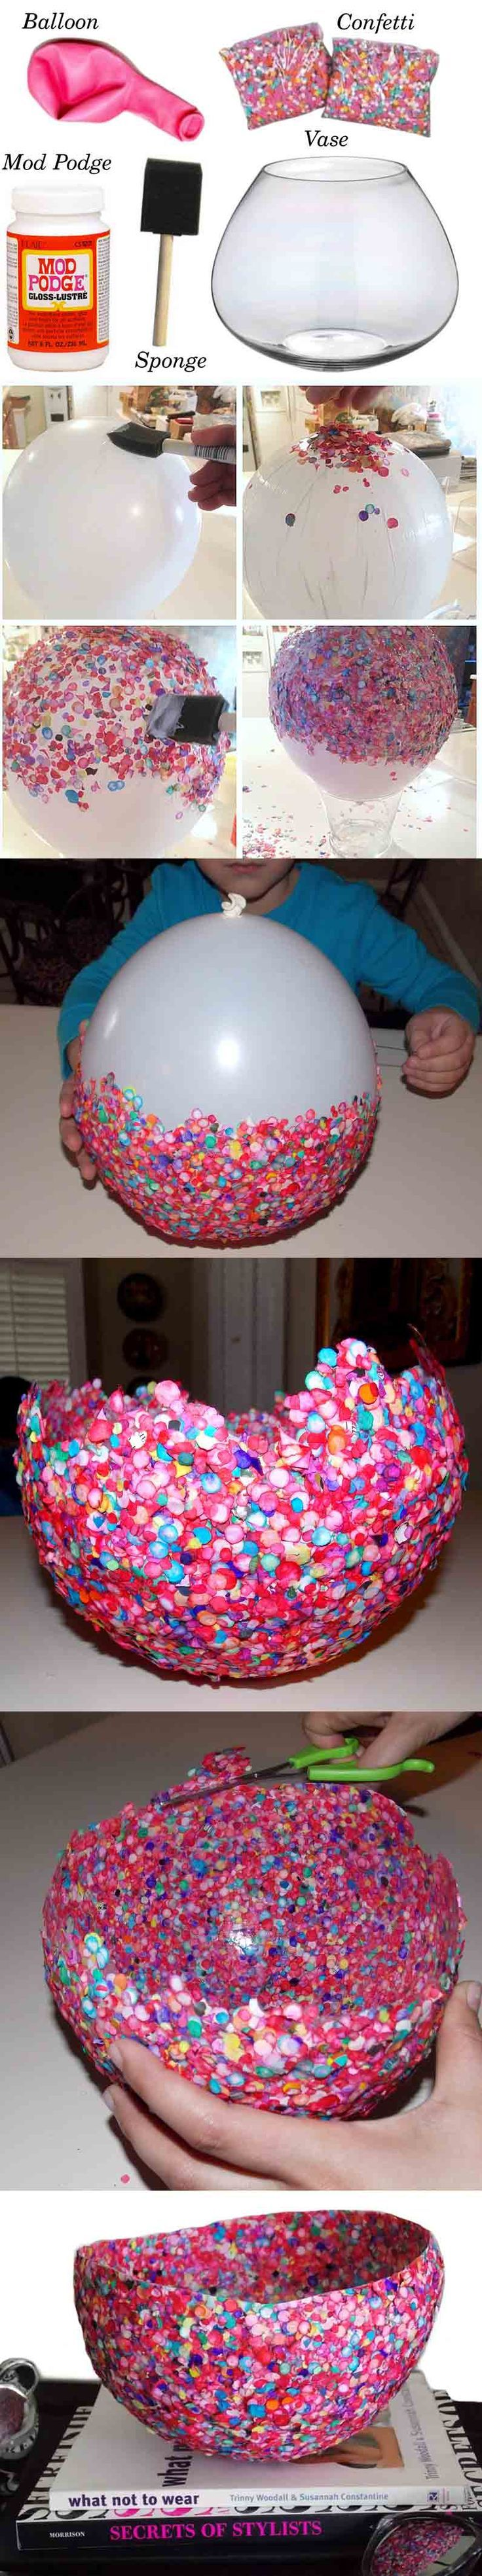 Cool confetti bowl! |